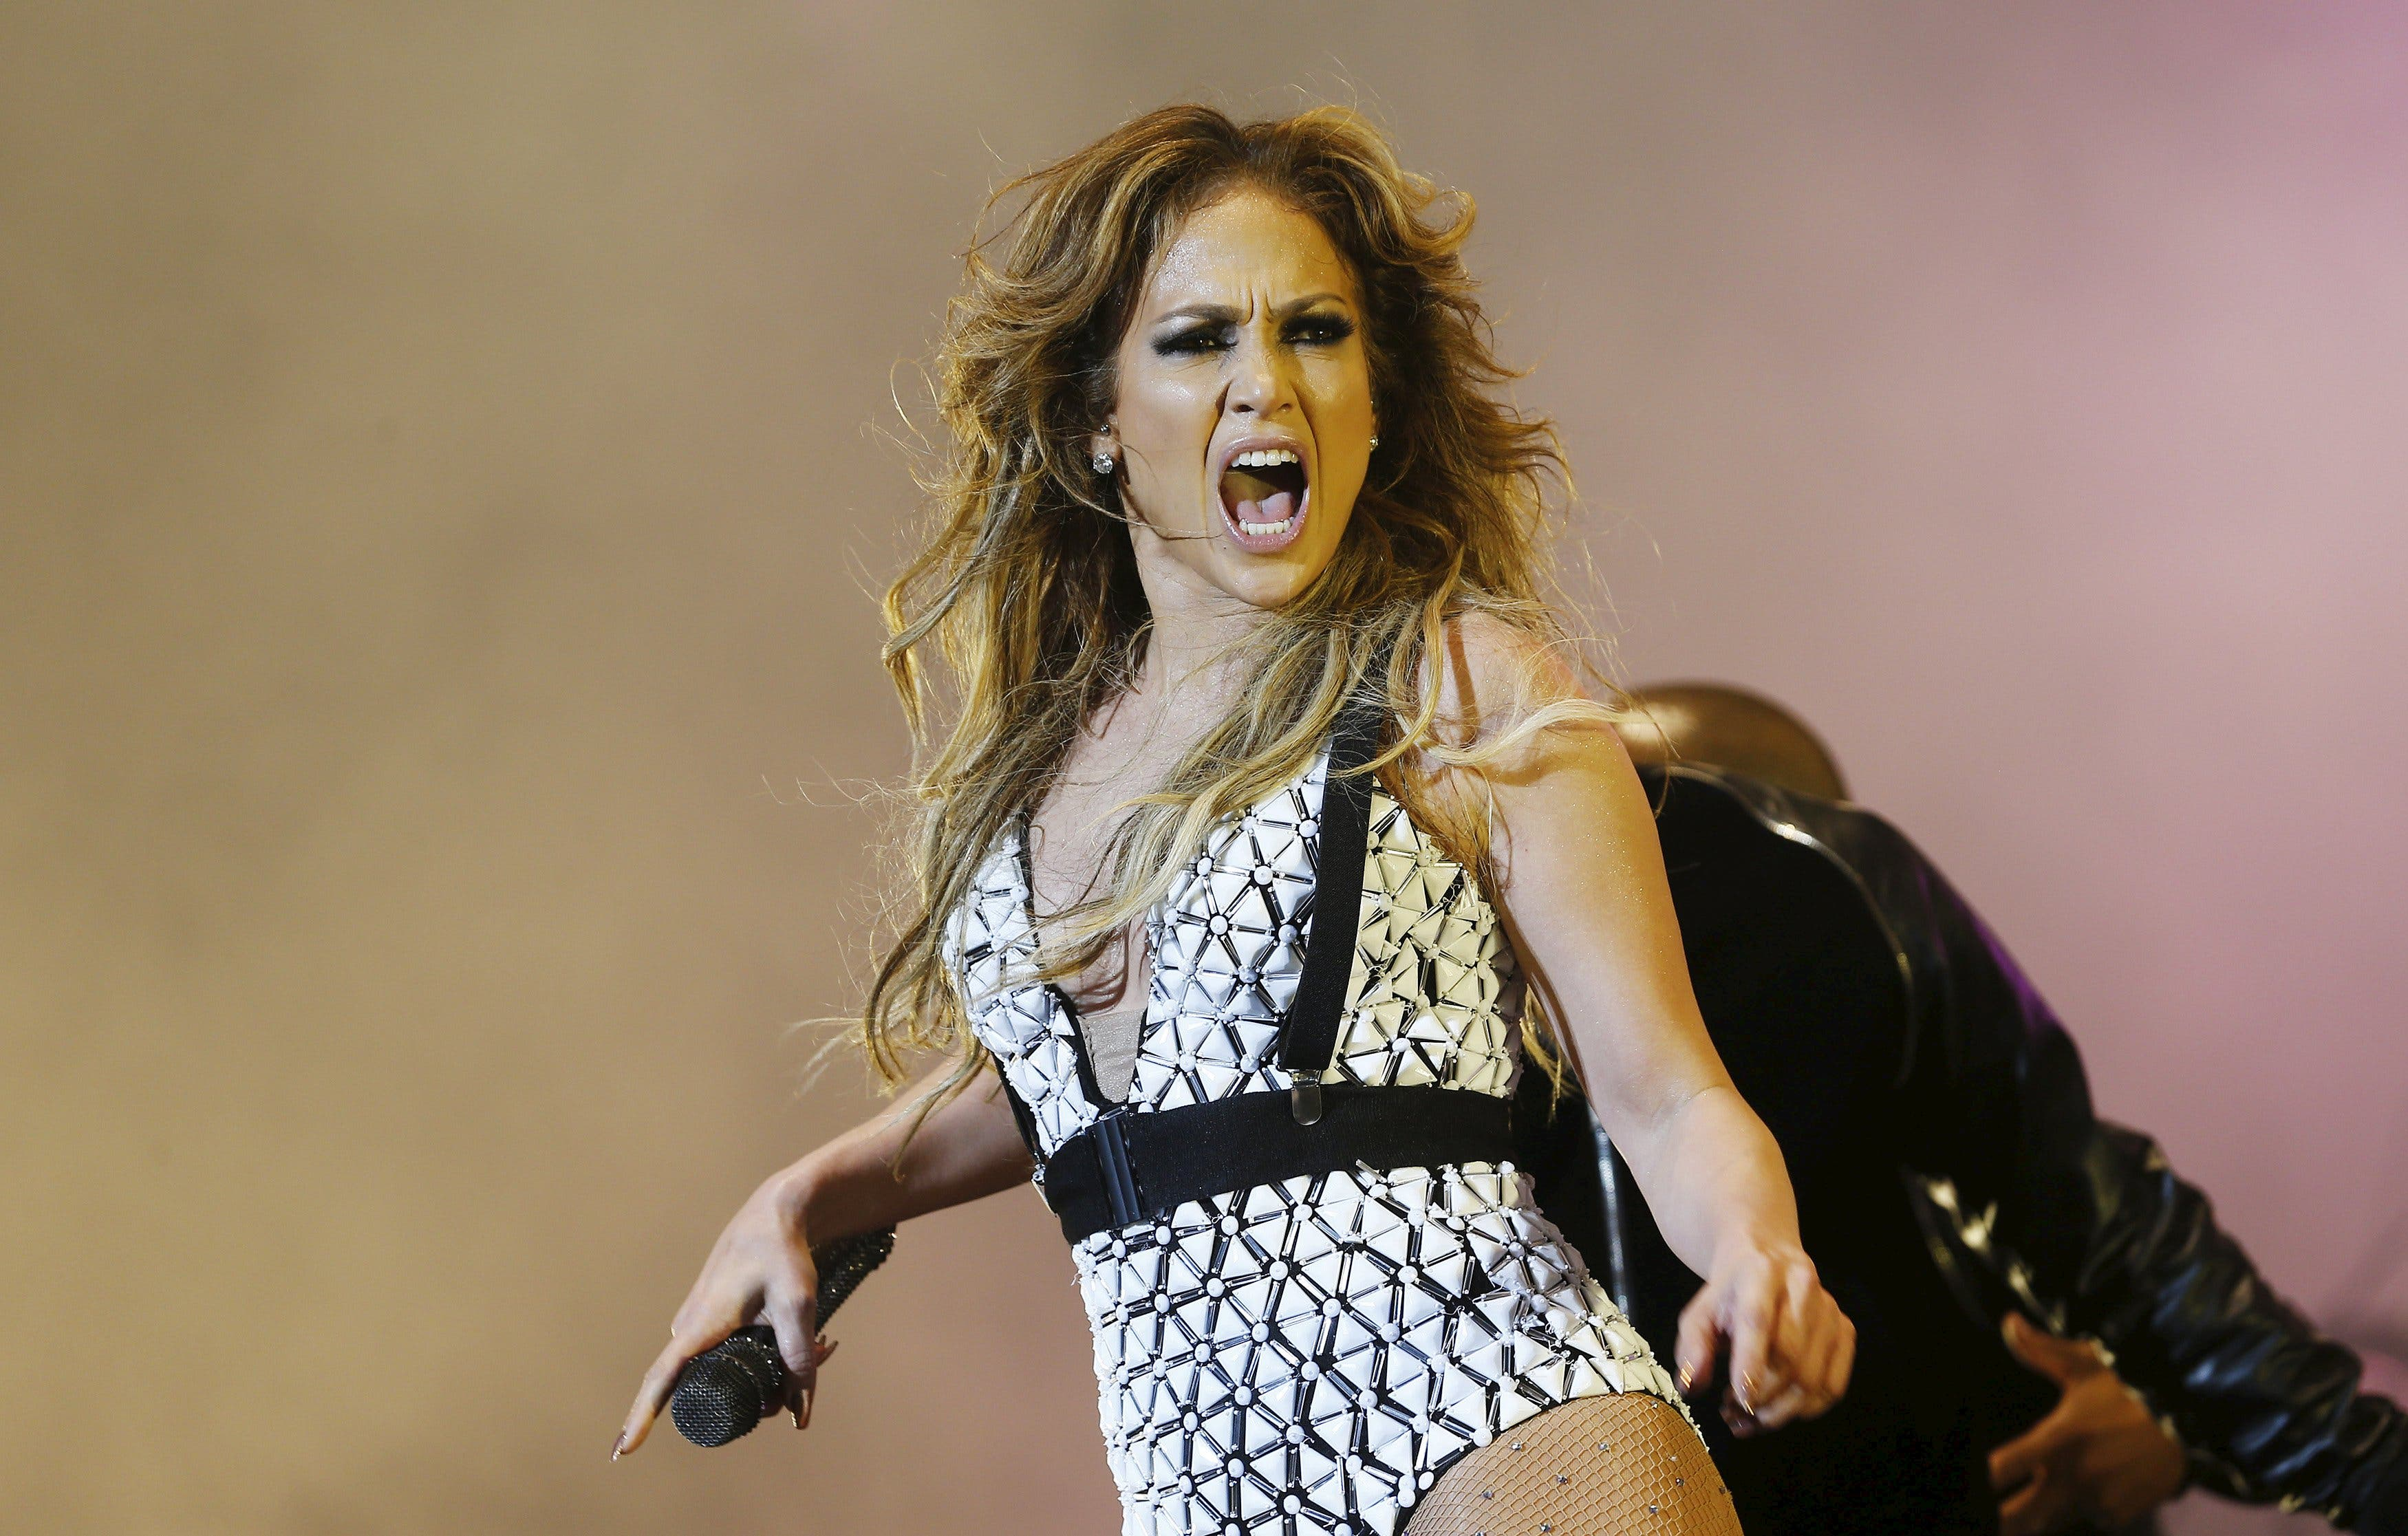 Singer Jennifer Lopez performs during the 14th Mawazine World Rhythms International Music Festival in Rabat. (Reuters)